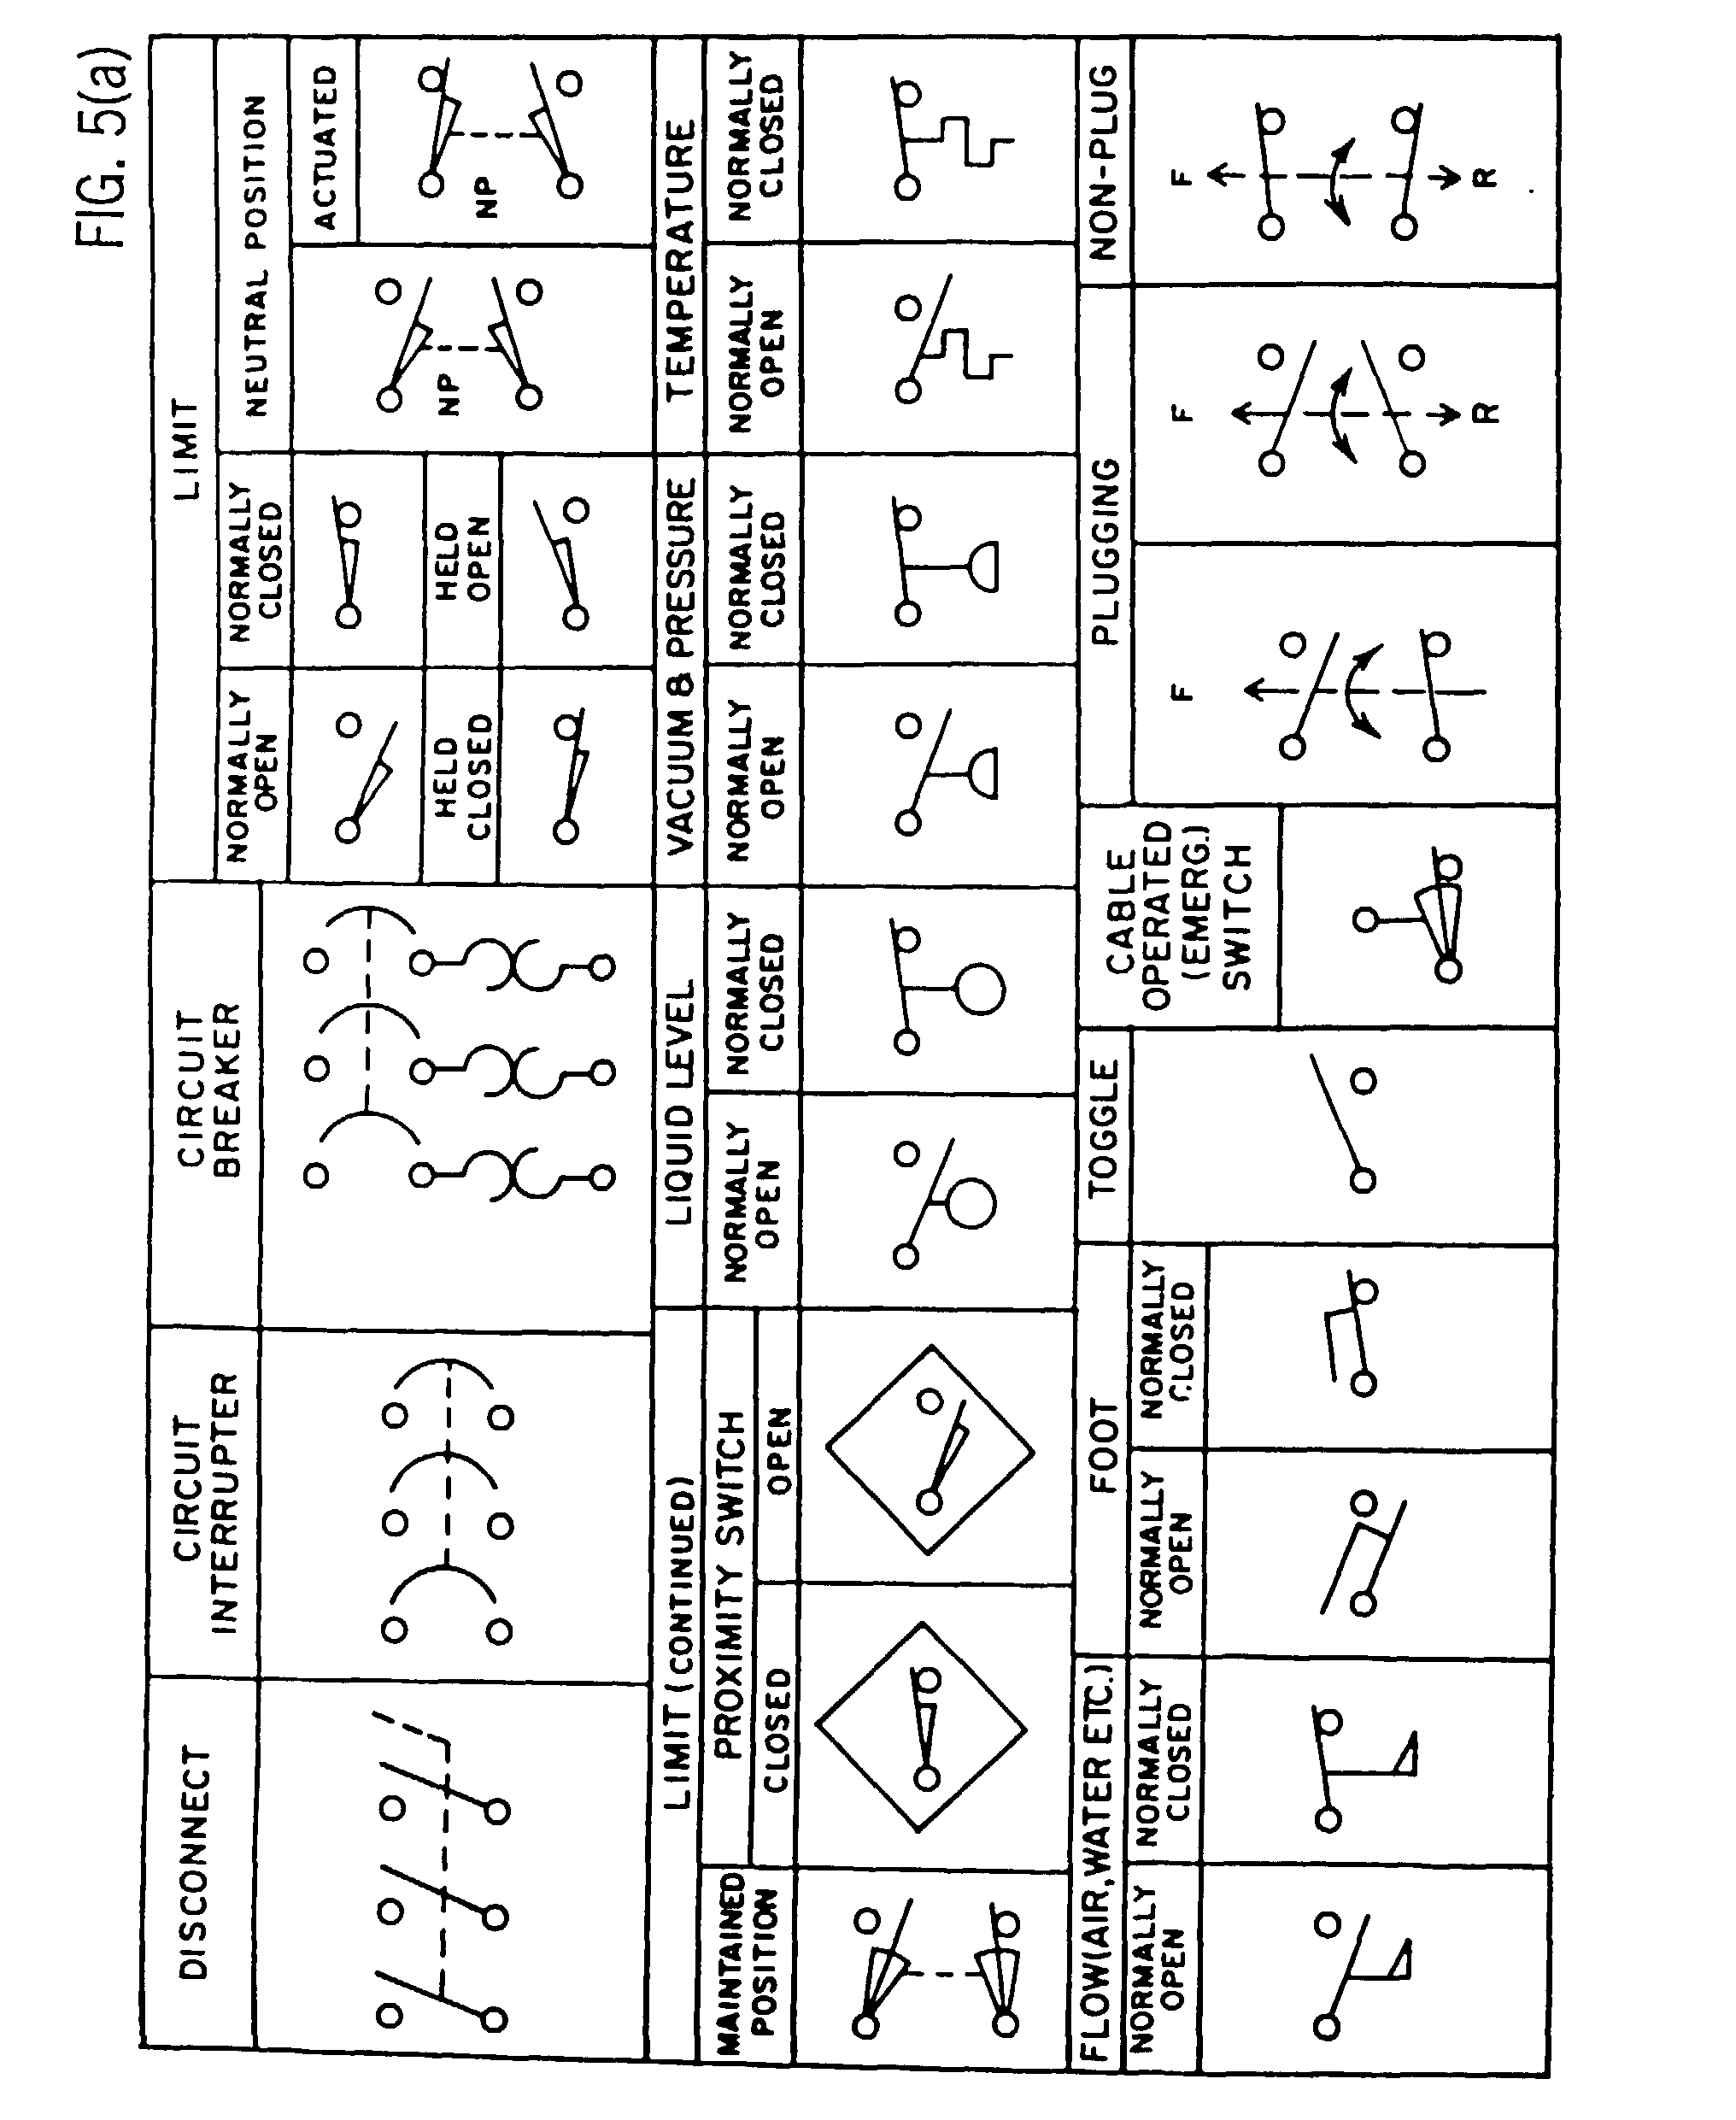 plc wiring diagram symbols collection